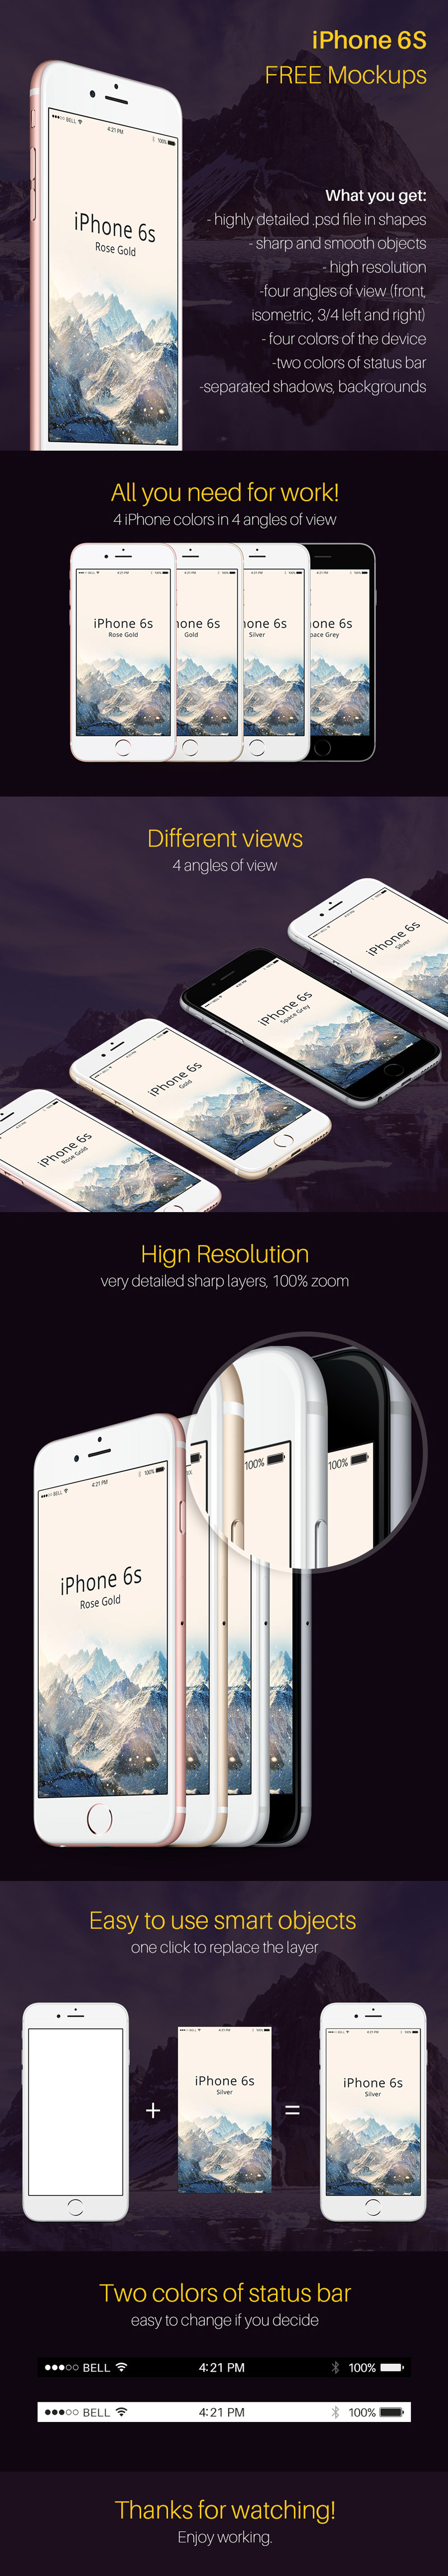 juless-design-iphone-6s-mockup-psd-free-preview-800PX